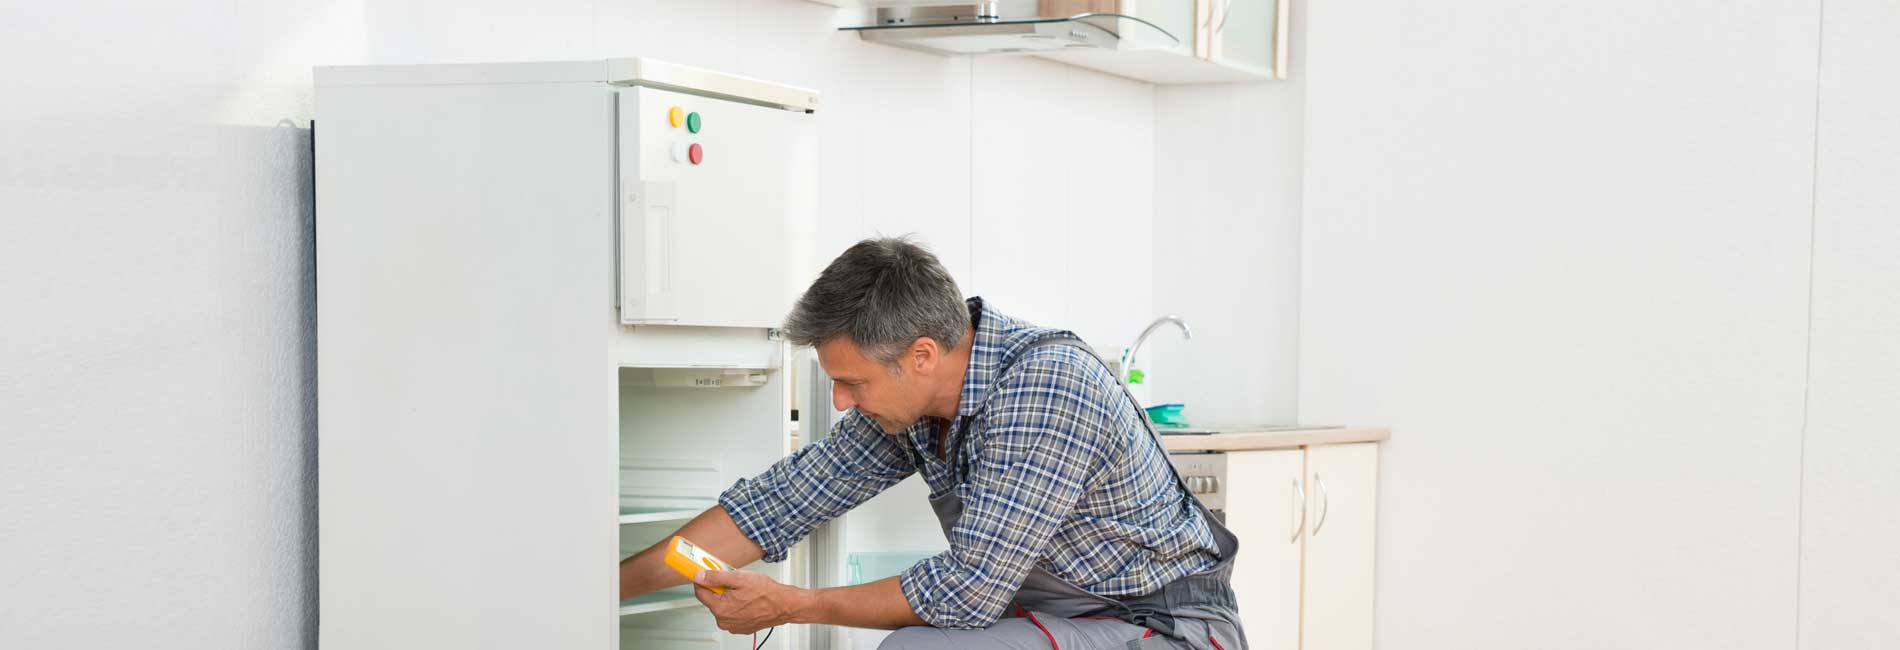 Fridge Repair in Poonamallee